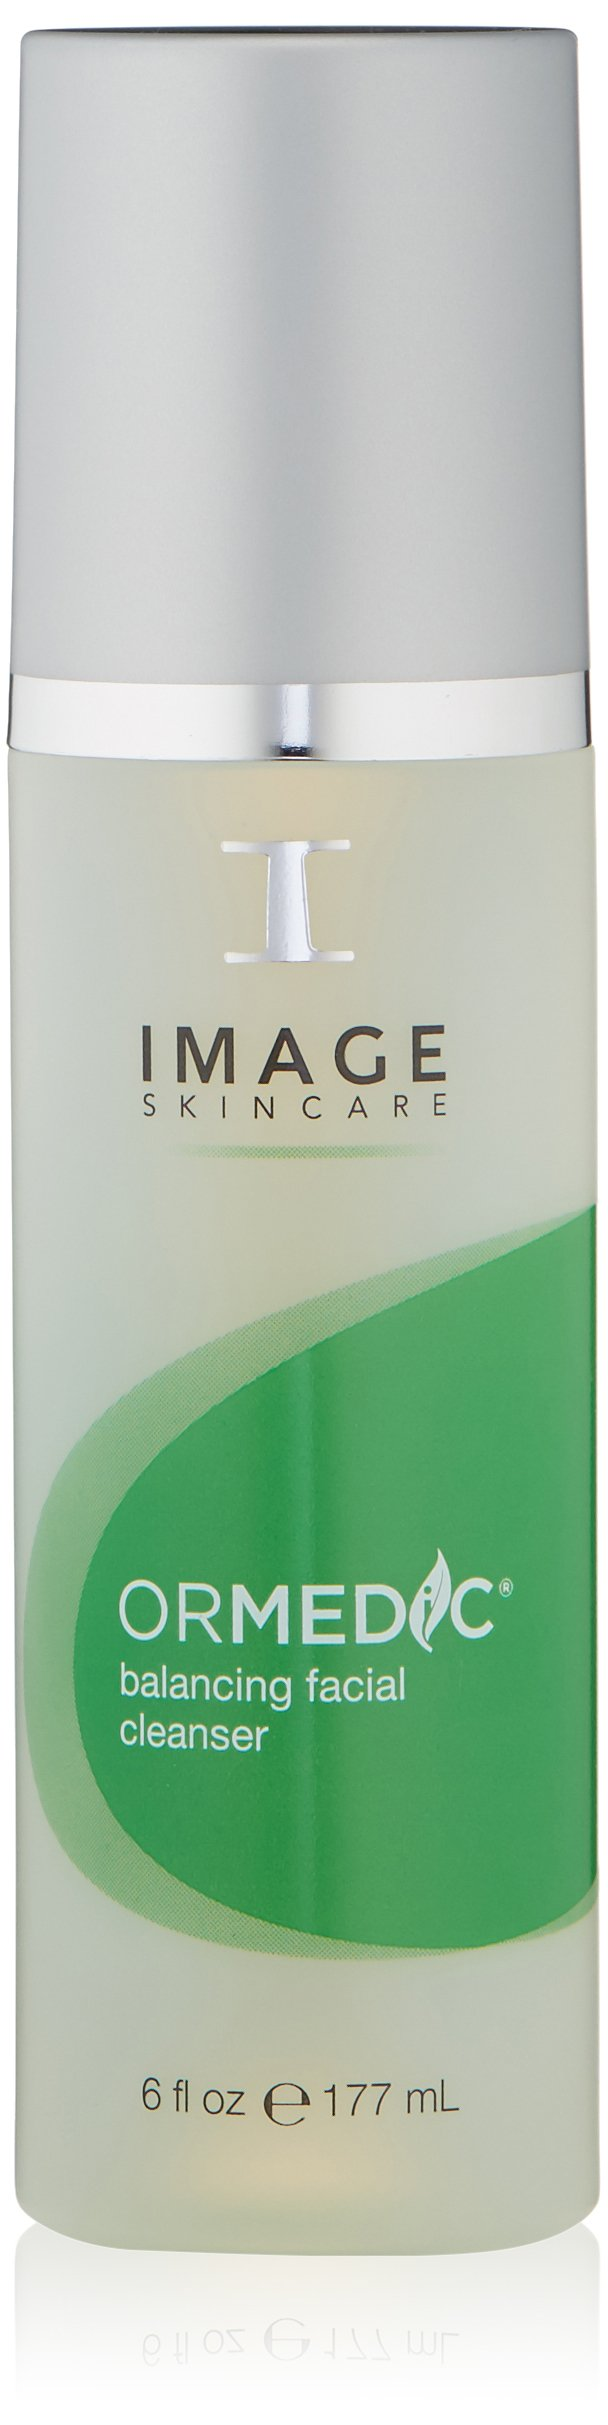 IMAGE Skincare Ormedic Balancing Facial Cleanser, 6 oz. by IMAGE Skincare (Image #1)